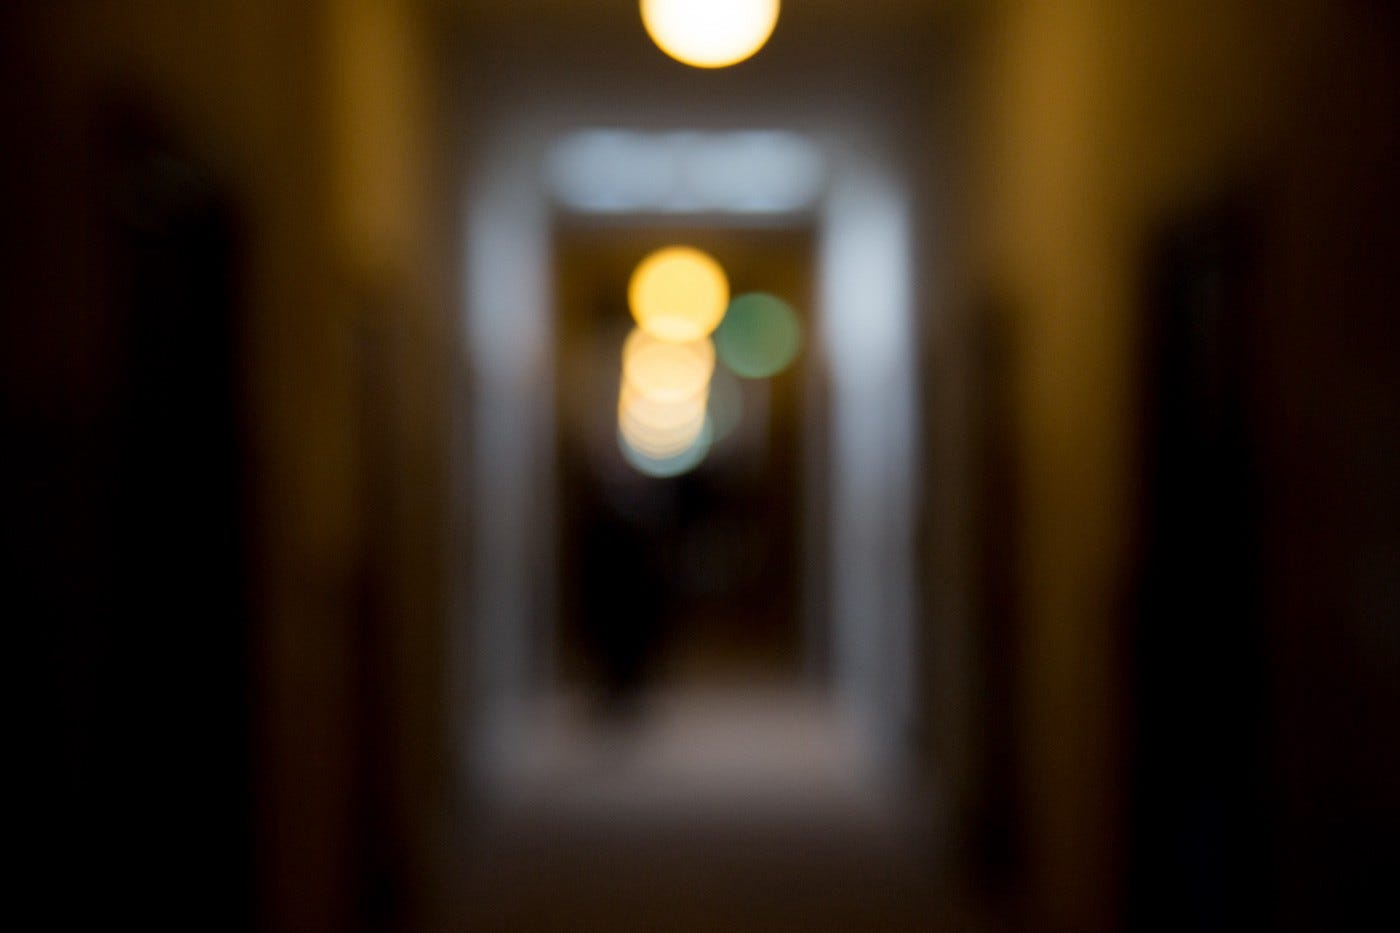 Blurry lights viewed down an out-of-focus hallway.